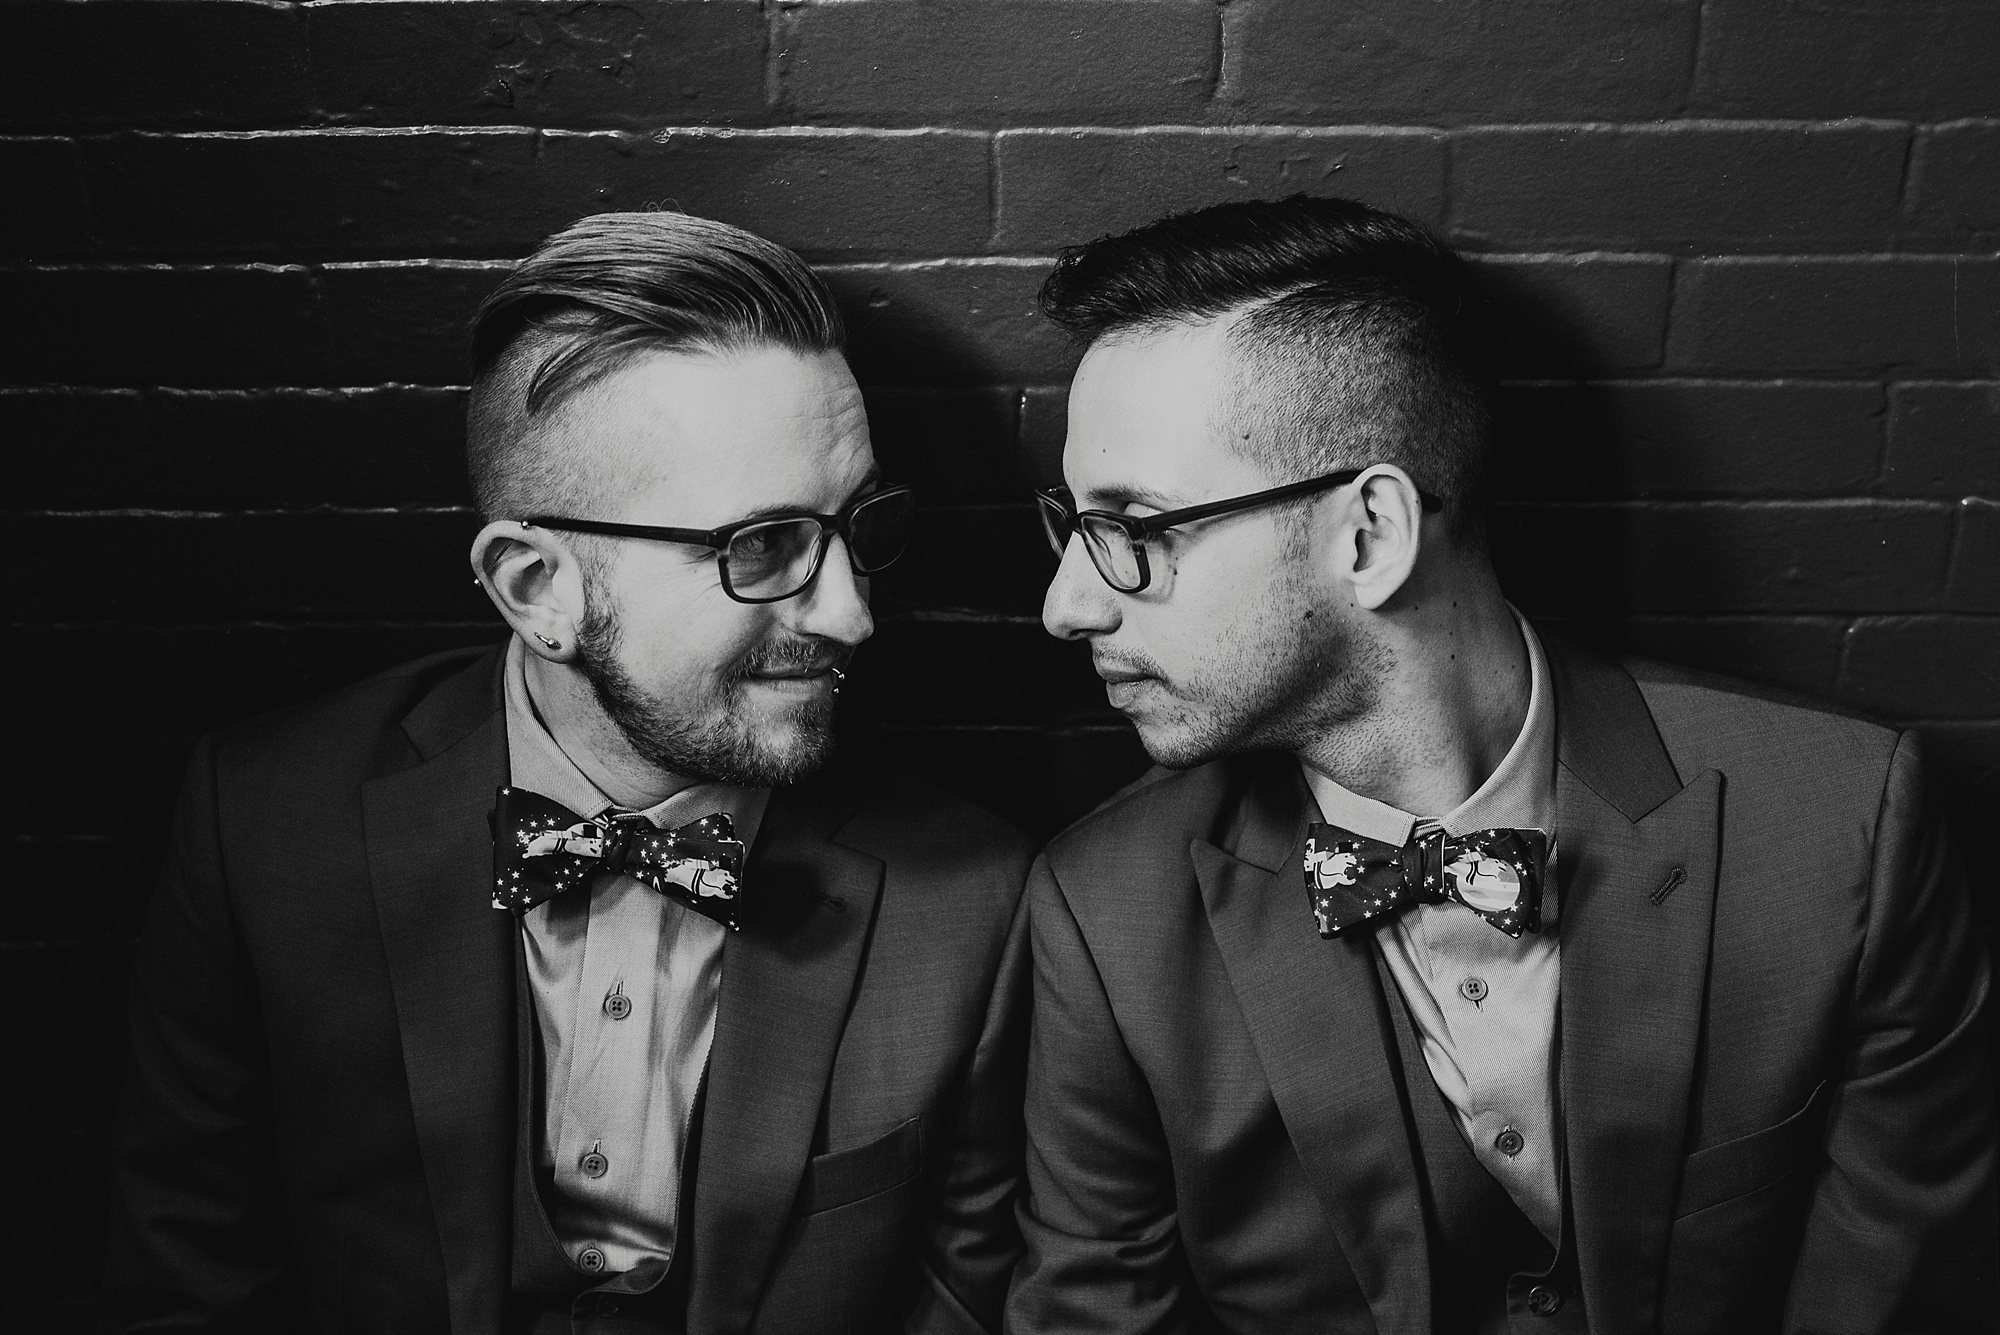 Joe_Mac_Creative_Philadelphia_Philly_LGBT_Gay_Engagement_Wedding_Photography__0111.jpg